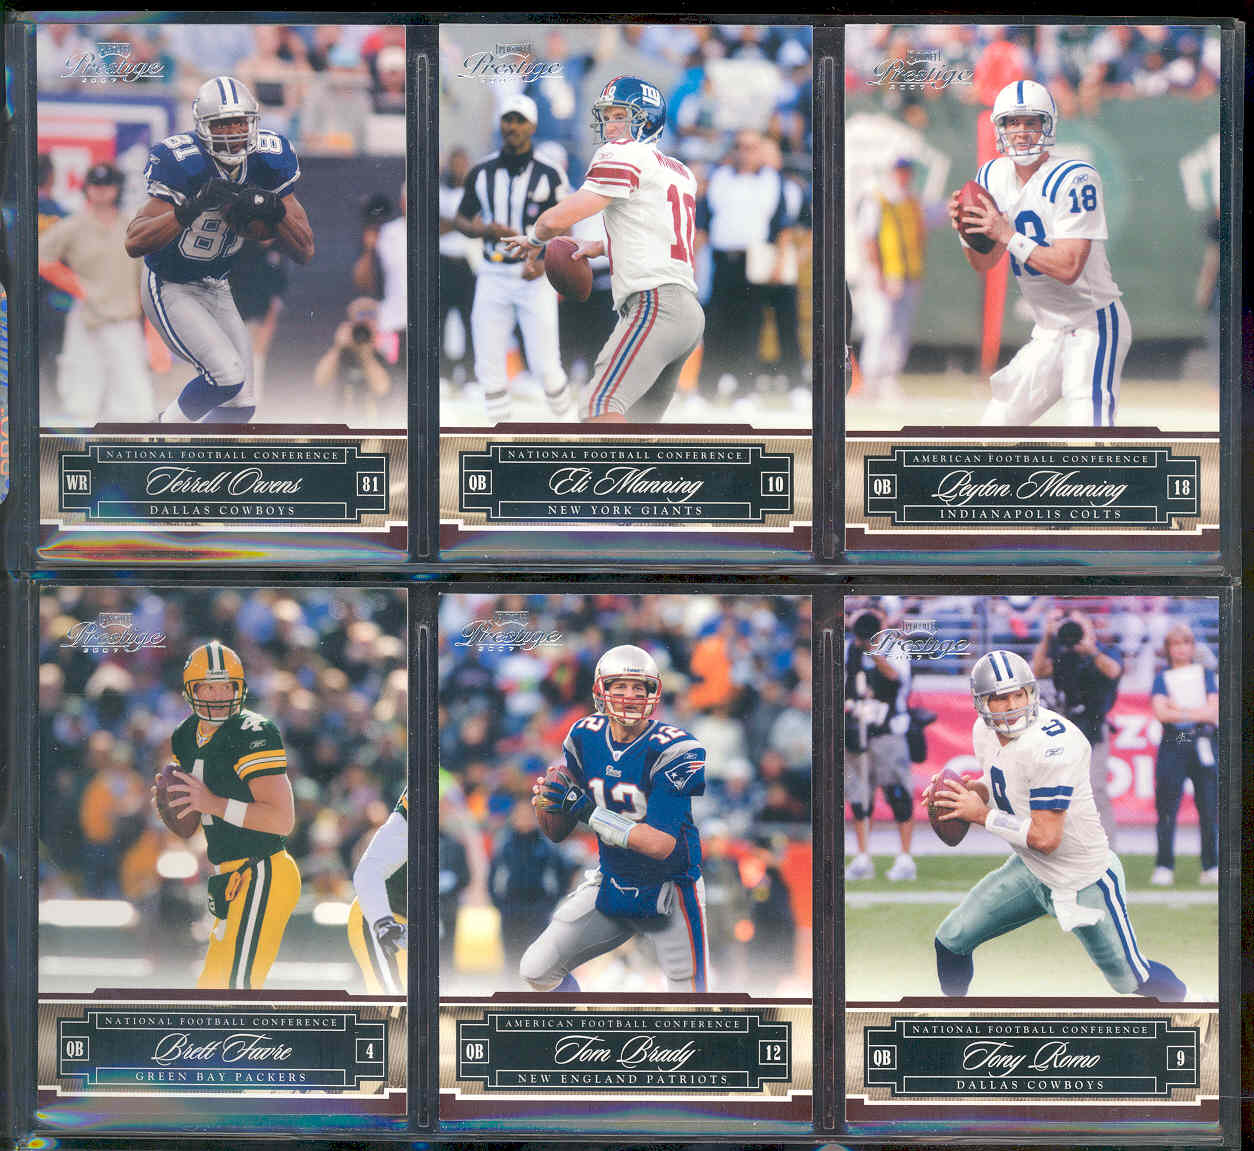 2007 Playoff Prestige Complete Set 1-150 Loaded w stars like Brett Favre Tom Brady Tony Romo Terrell Owens Eli Manning Peyton Manning Low Shipping Cost